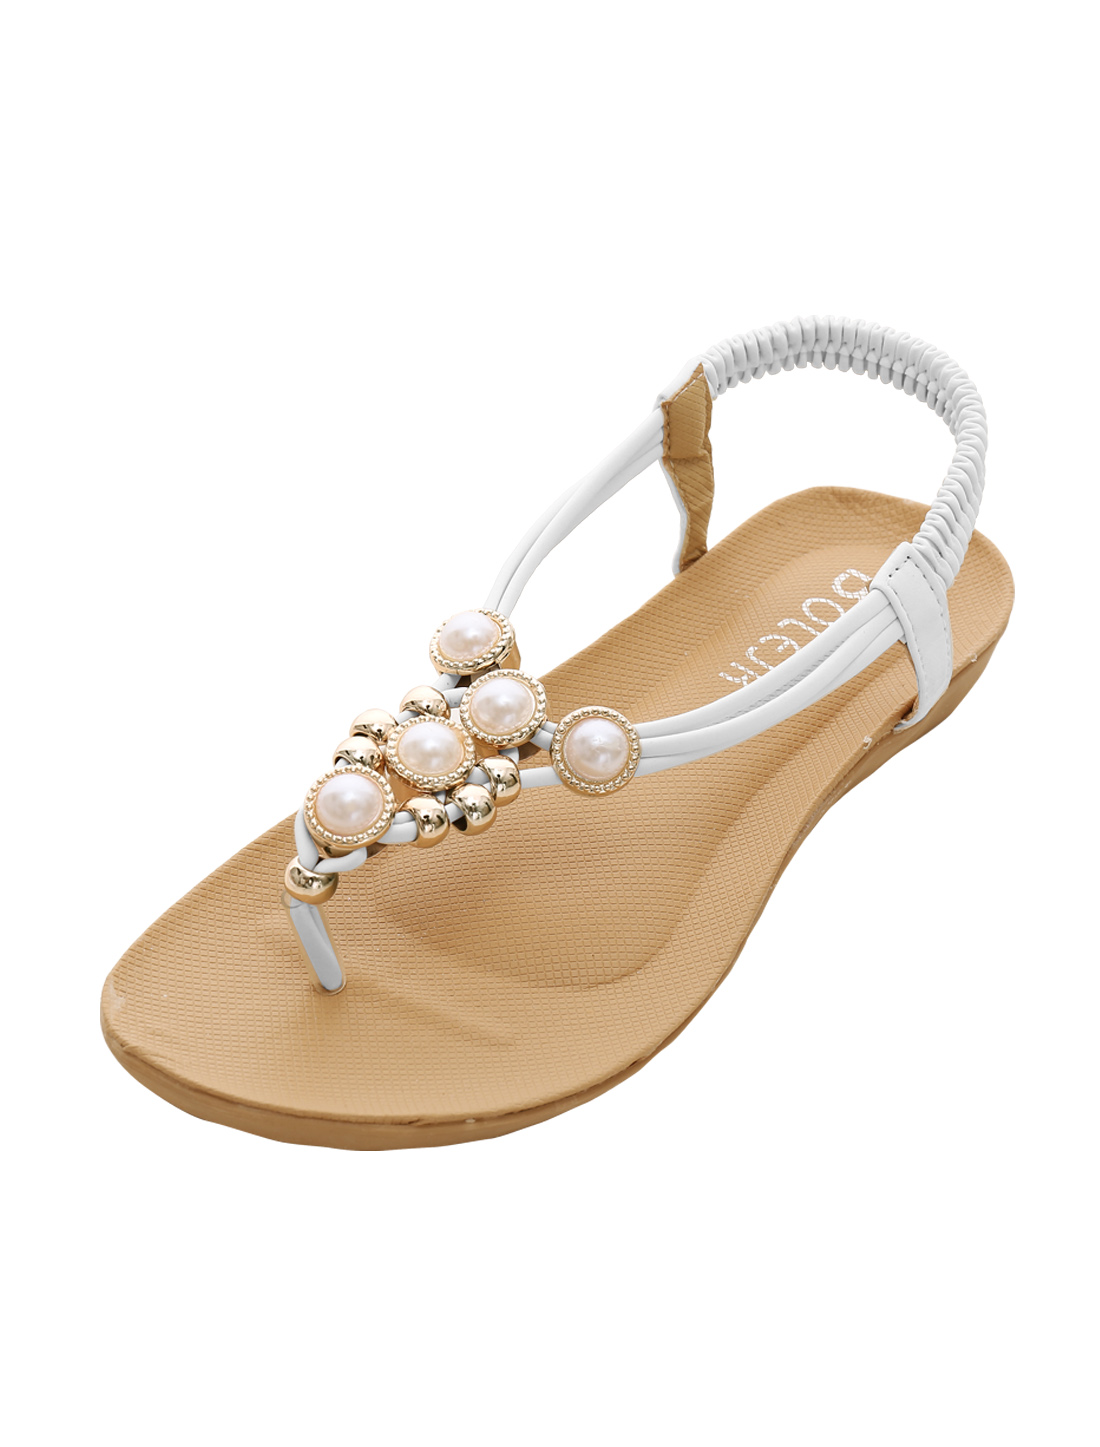 Woman Elastic Ankle Strap Textured Outsole Flat Sandals White US 6